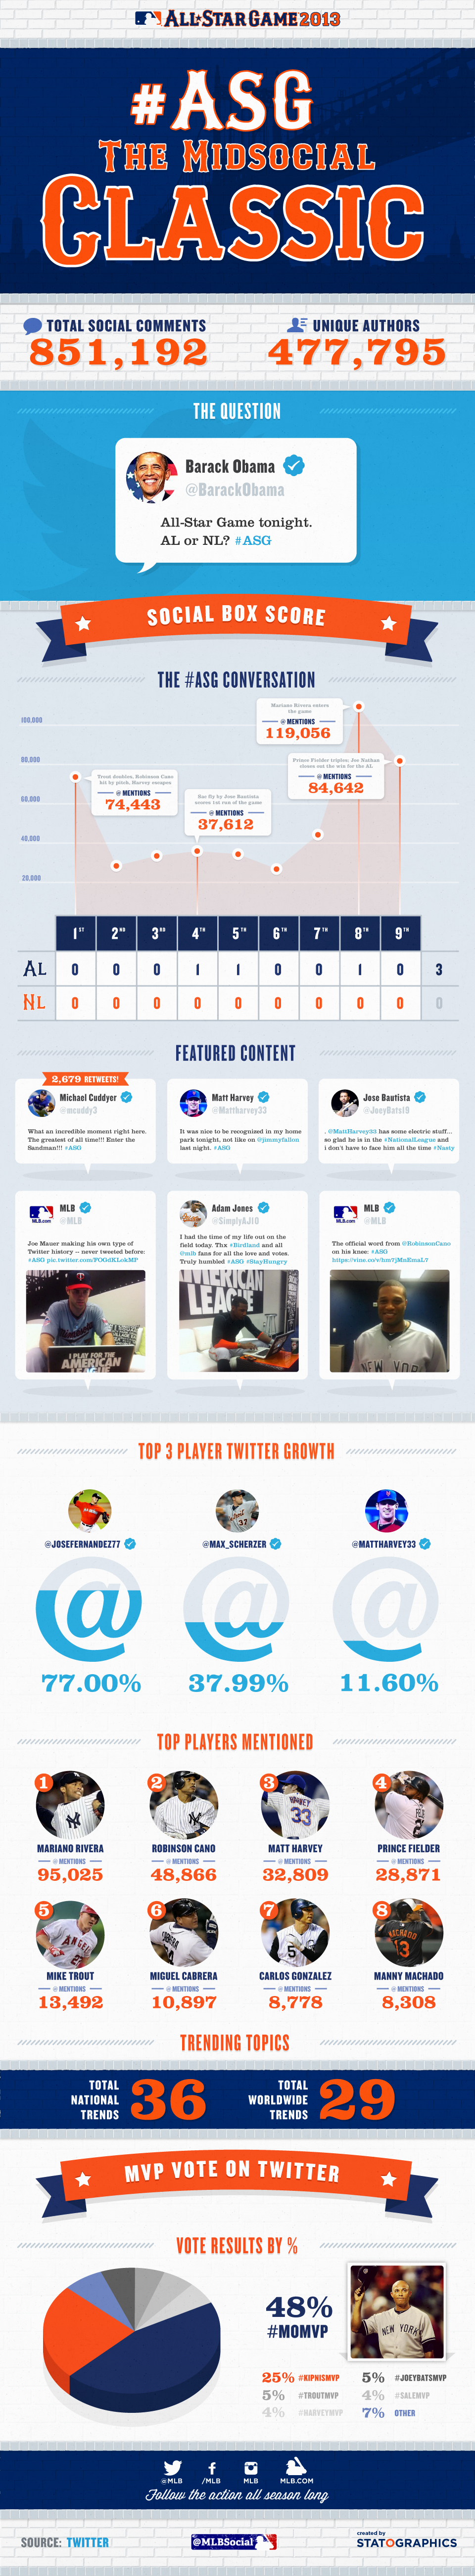 [INFOGRAPHIC] Exit Cano, Enter Sandman: Robinson Cano's early exit had Twitter talking, but #MoMVP owned the night.